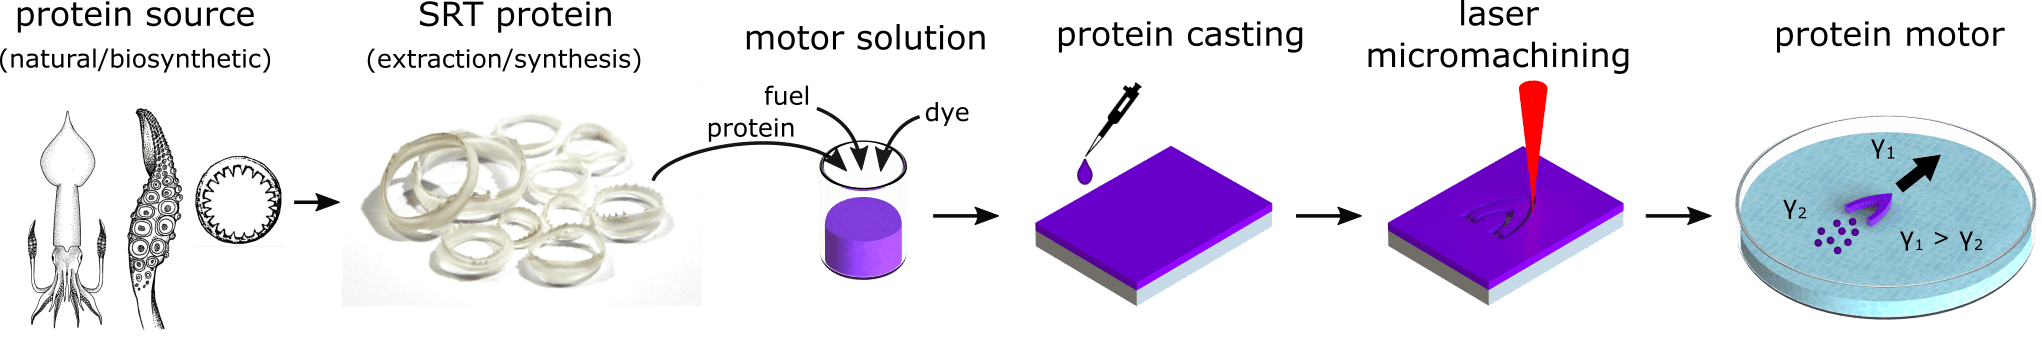 Fabrication of protein-based self-propelled motors